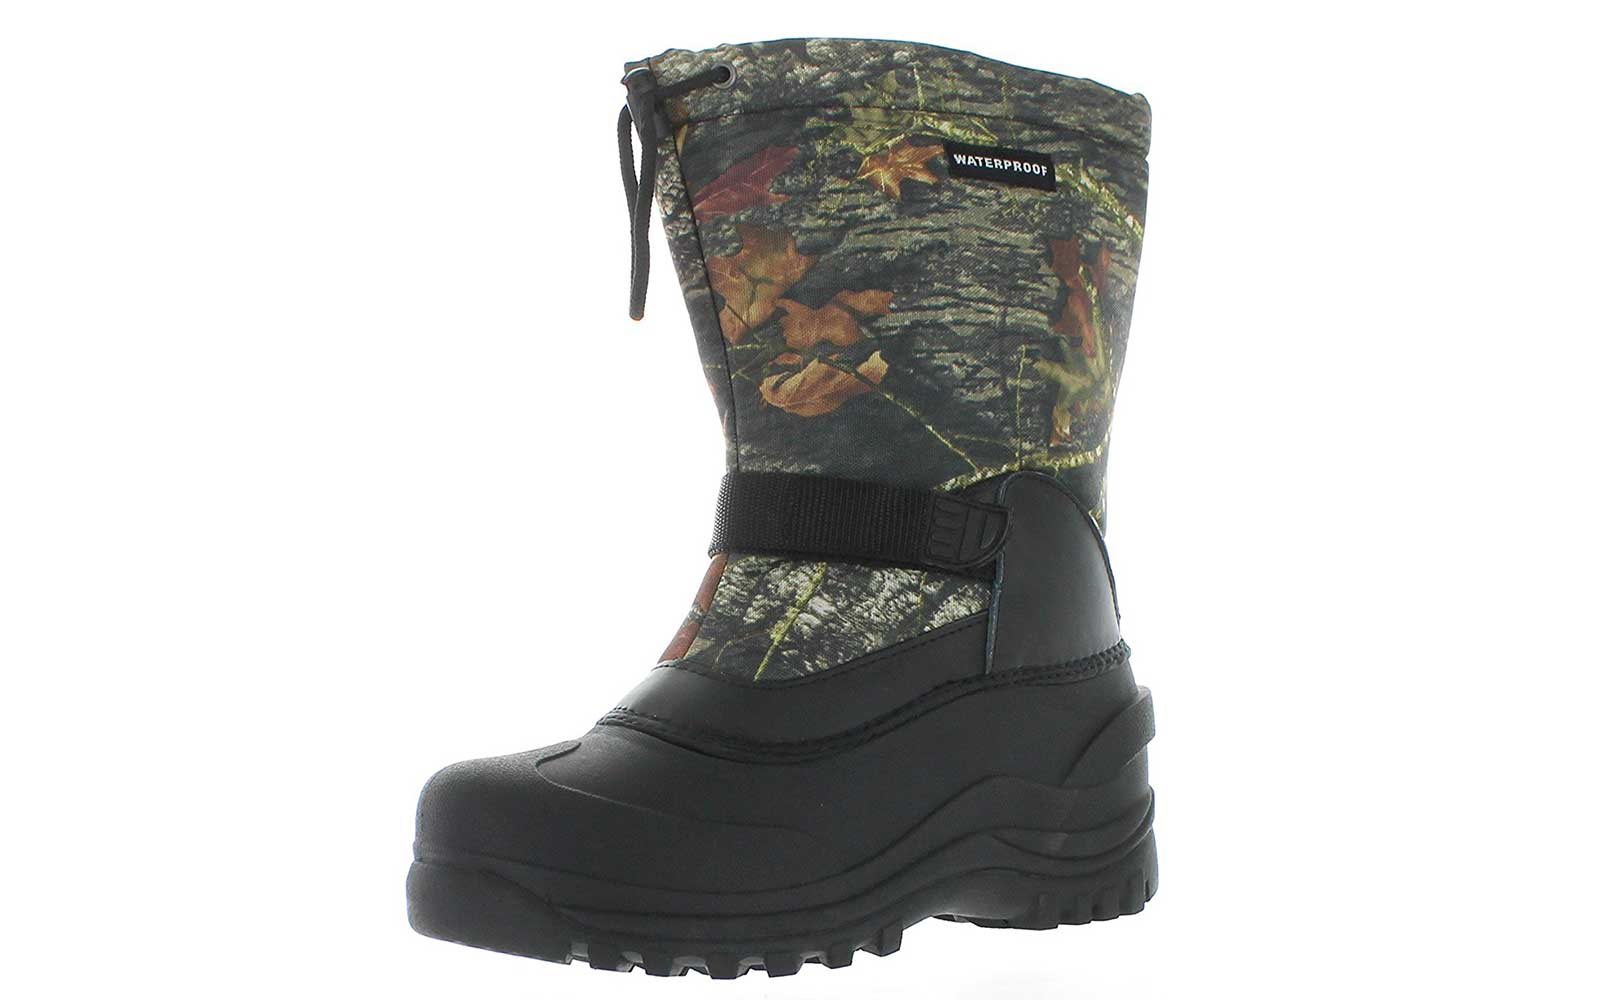 d116028ff5113 The Best Snow Boots You Can Get on Amazon | Travel + Leisure